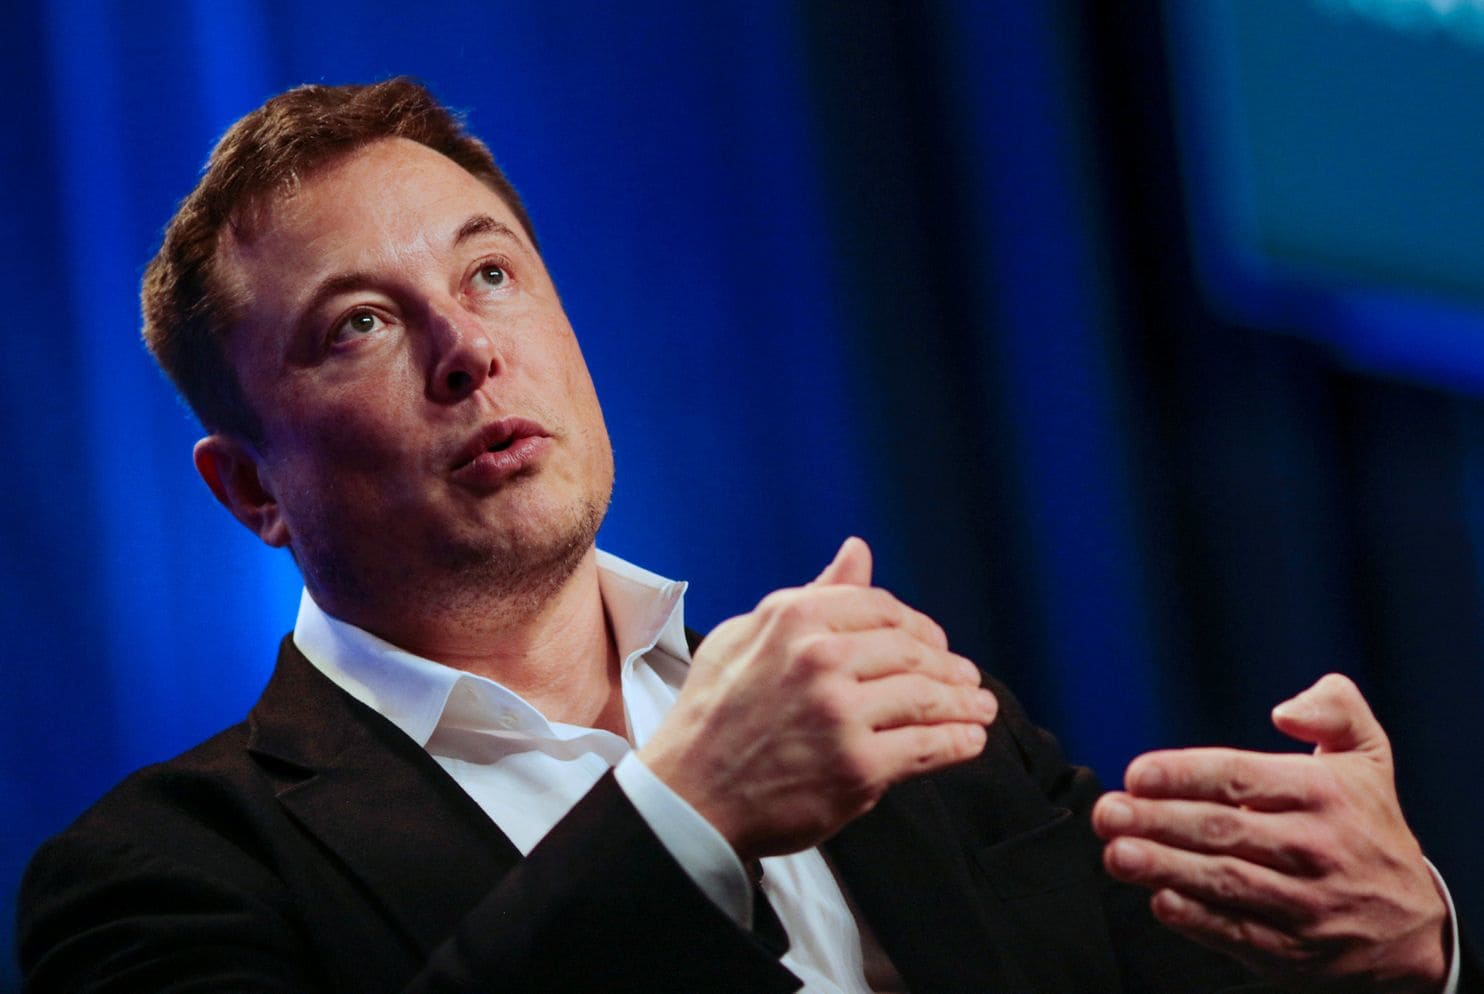 Elon Musk: To avoid becoming like monkeys, humans must merge with machines